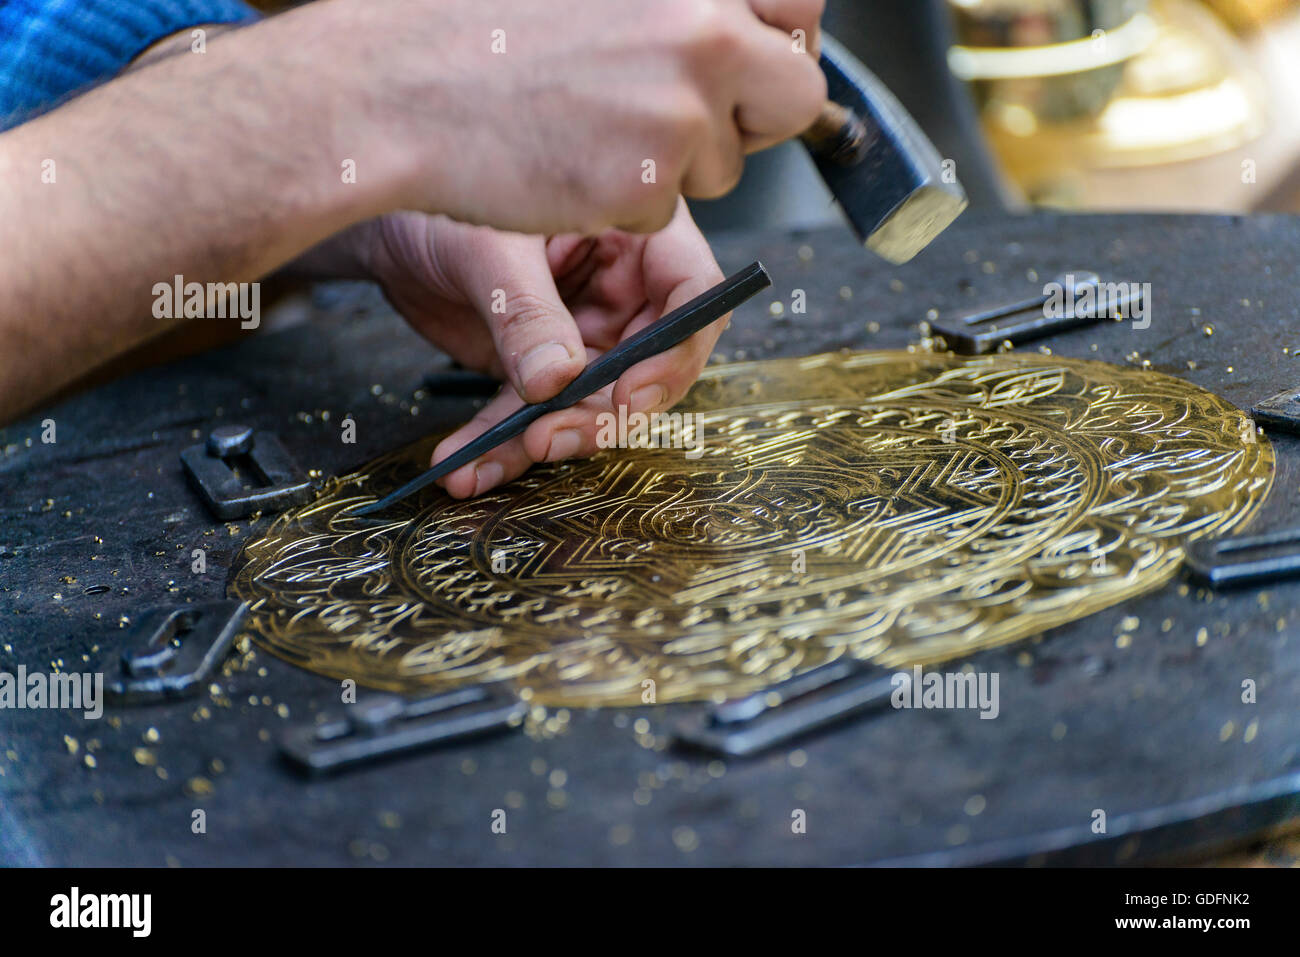 Two Hands of Craftsman Engraving Brass Plate Masterpiece - Stock Image